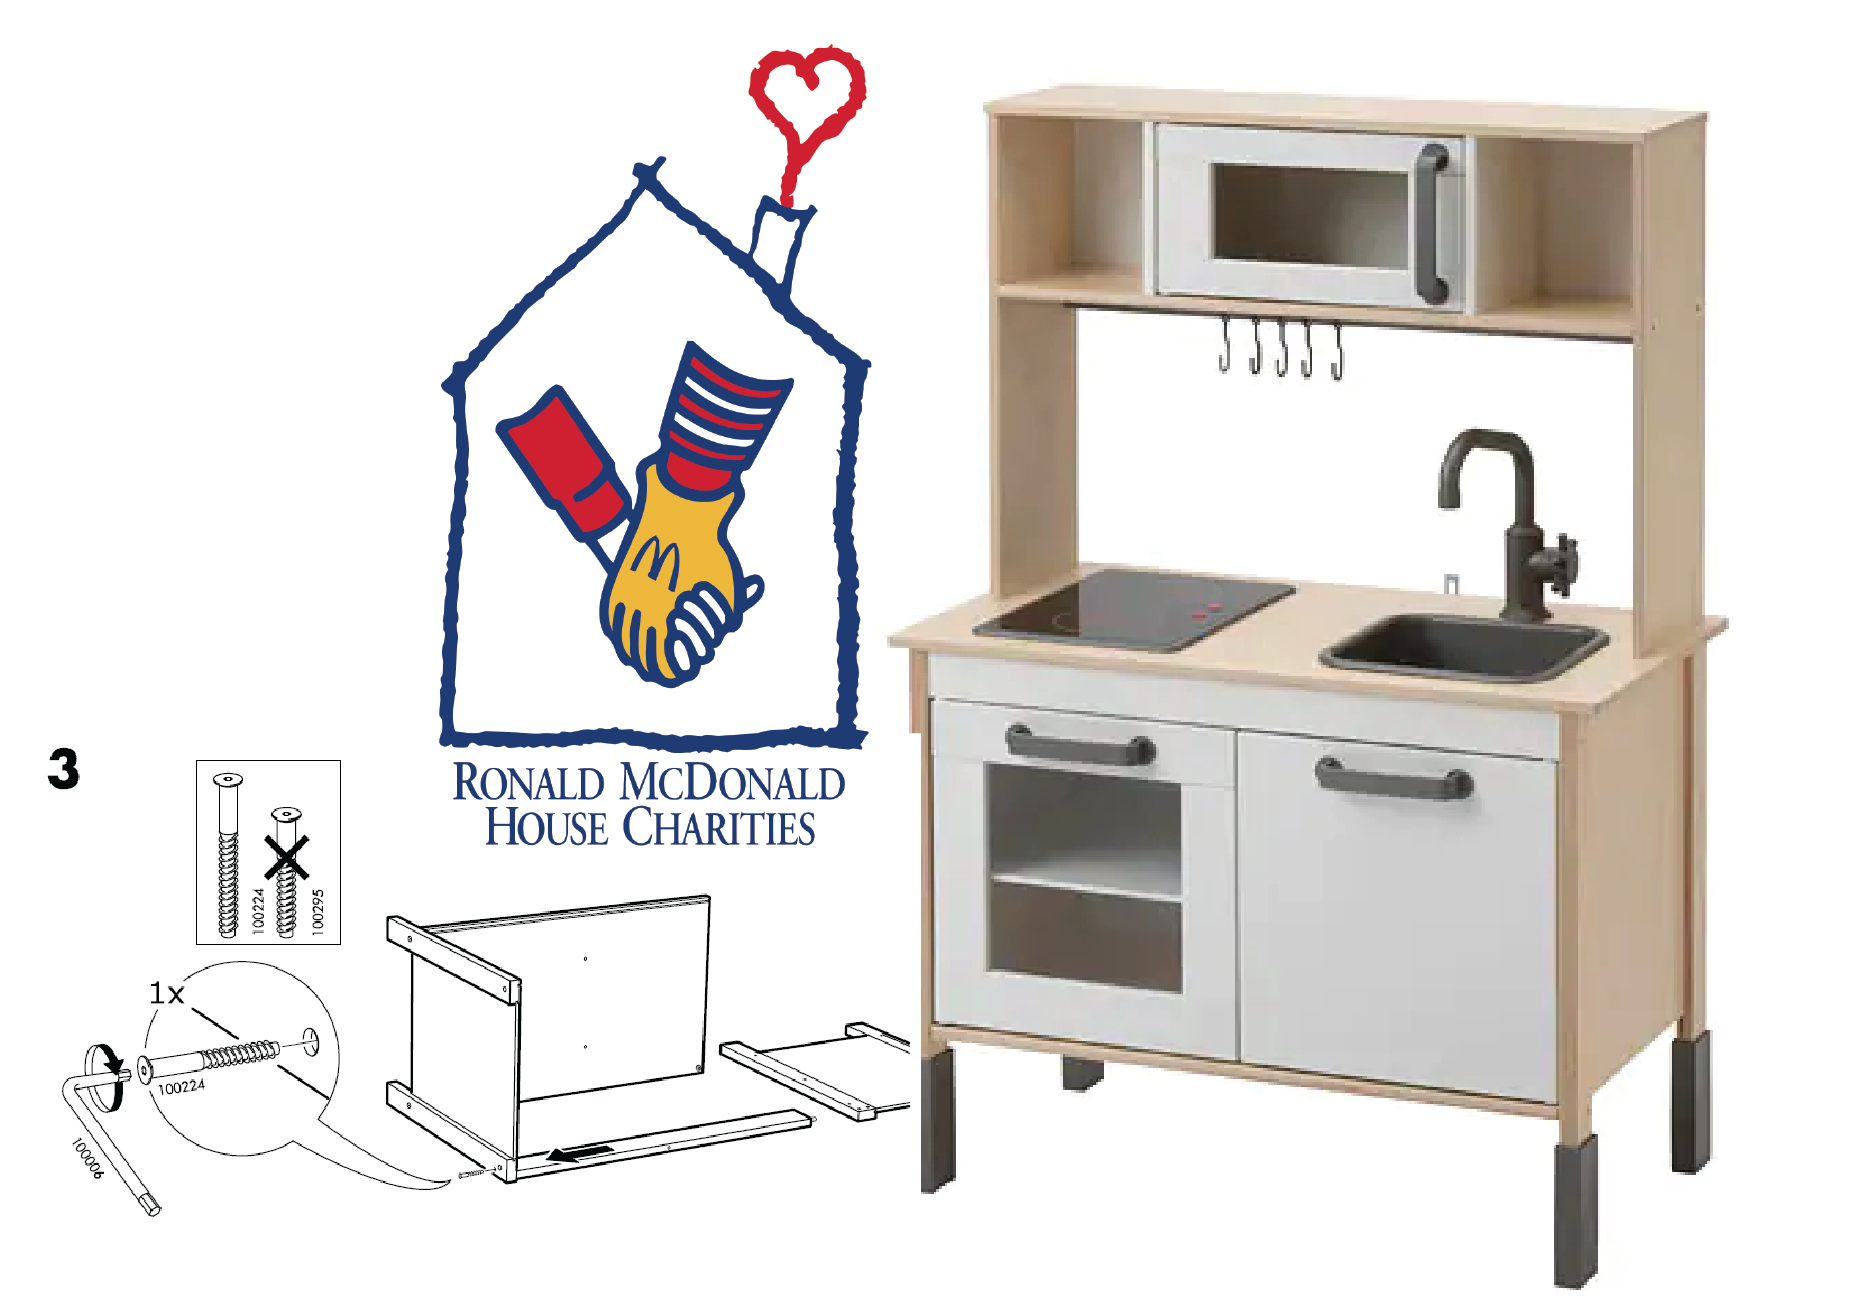 rmh&ikea.png